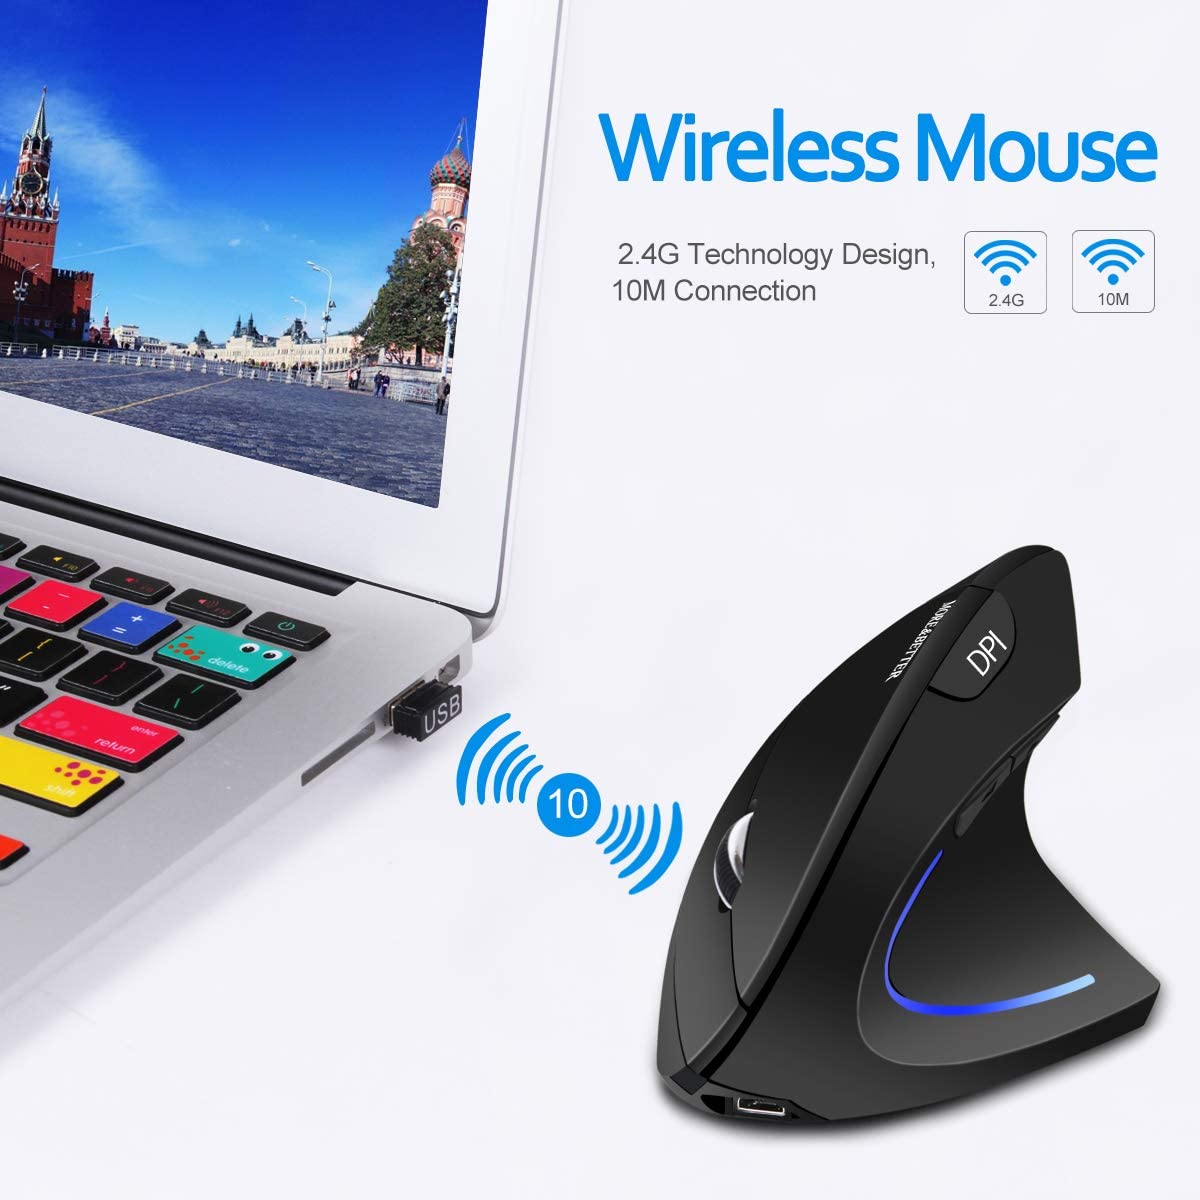 Vertical Mouse Wireless Ergonomic Mouse Rechargeable 2.4G Optical Vertical USB Mouse with Adjustable 1000//1200//1600 DPI Black 6 Buttons Reduces Hand//Wrist Pain for Laptop Computer